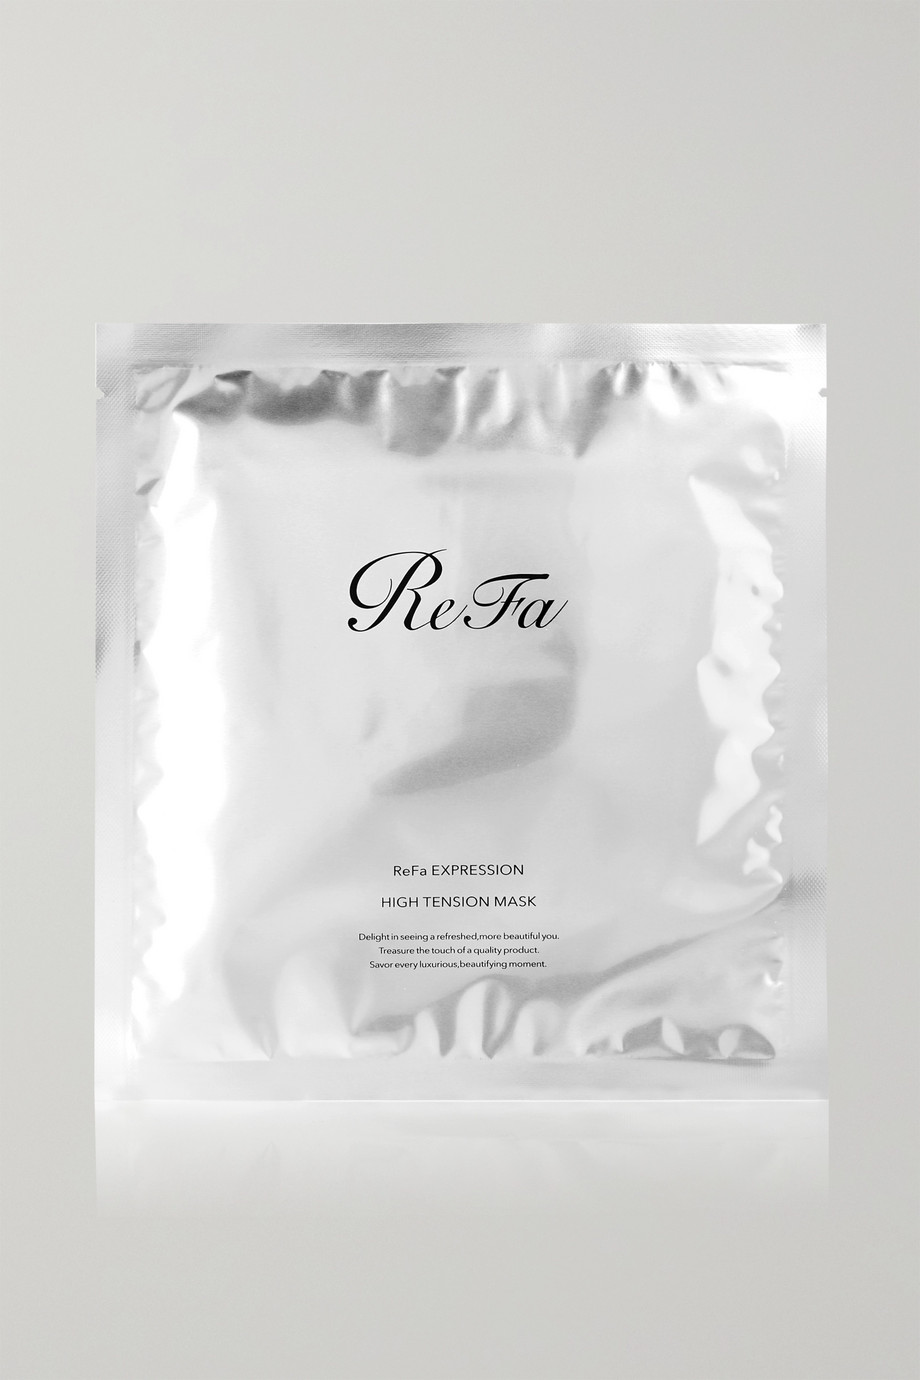 ReFa Expression High Tension Mask x 4